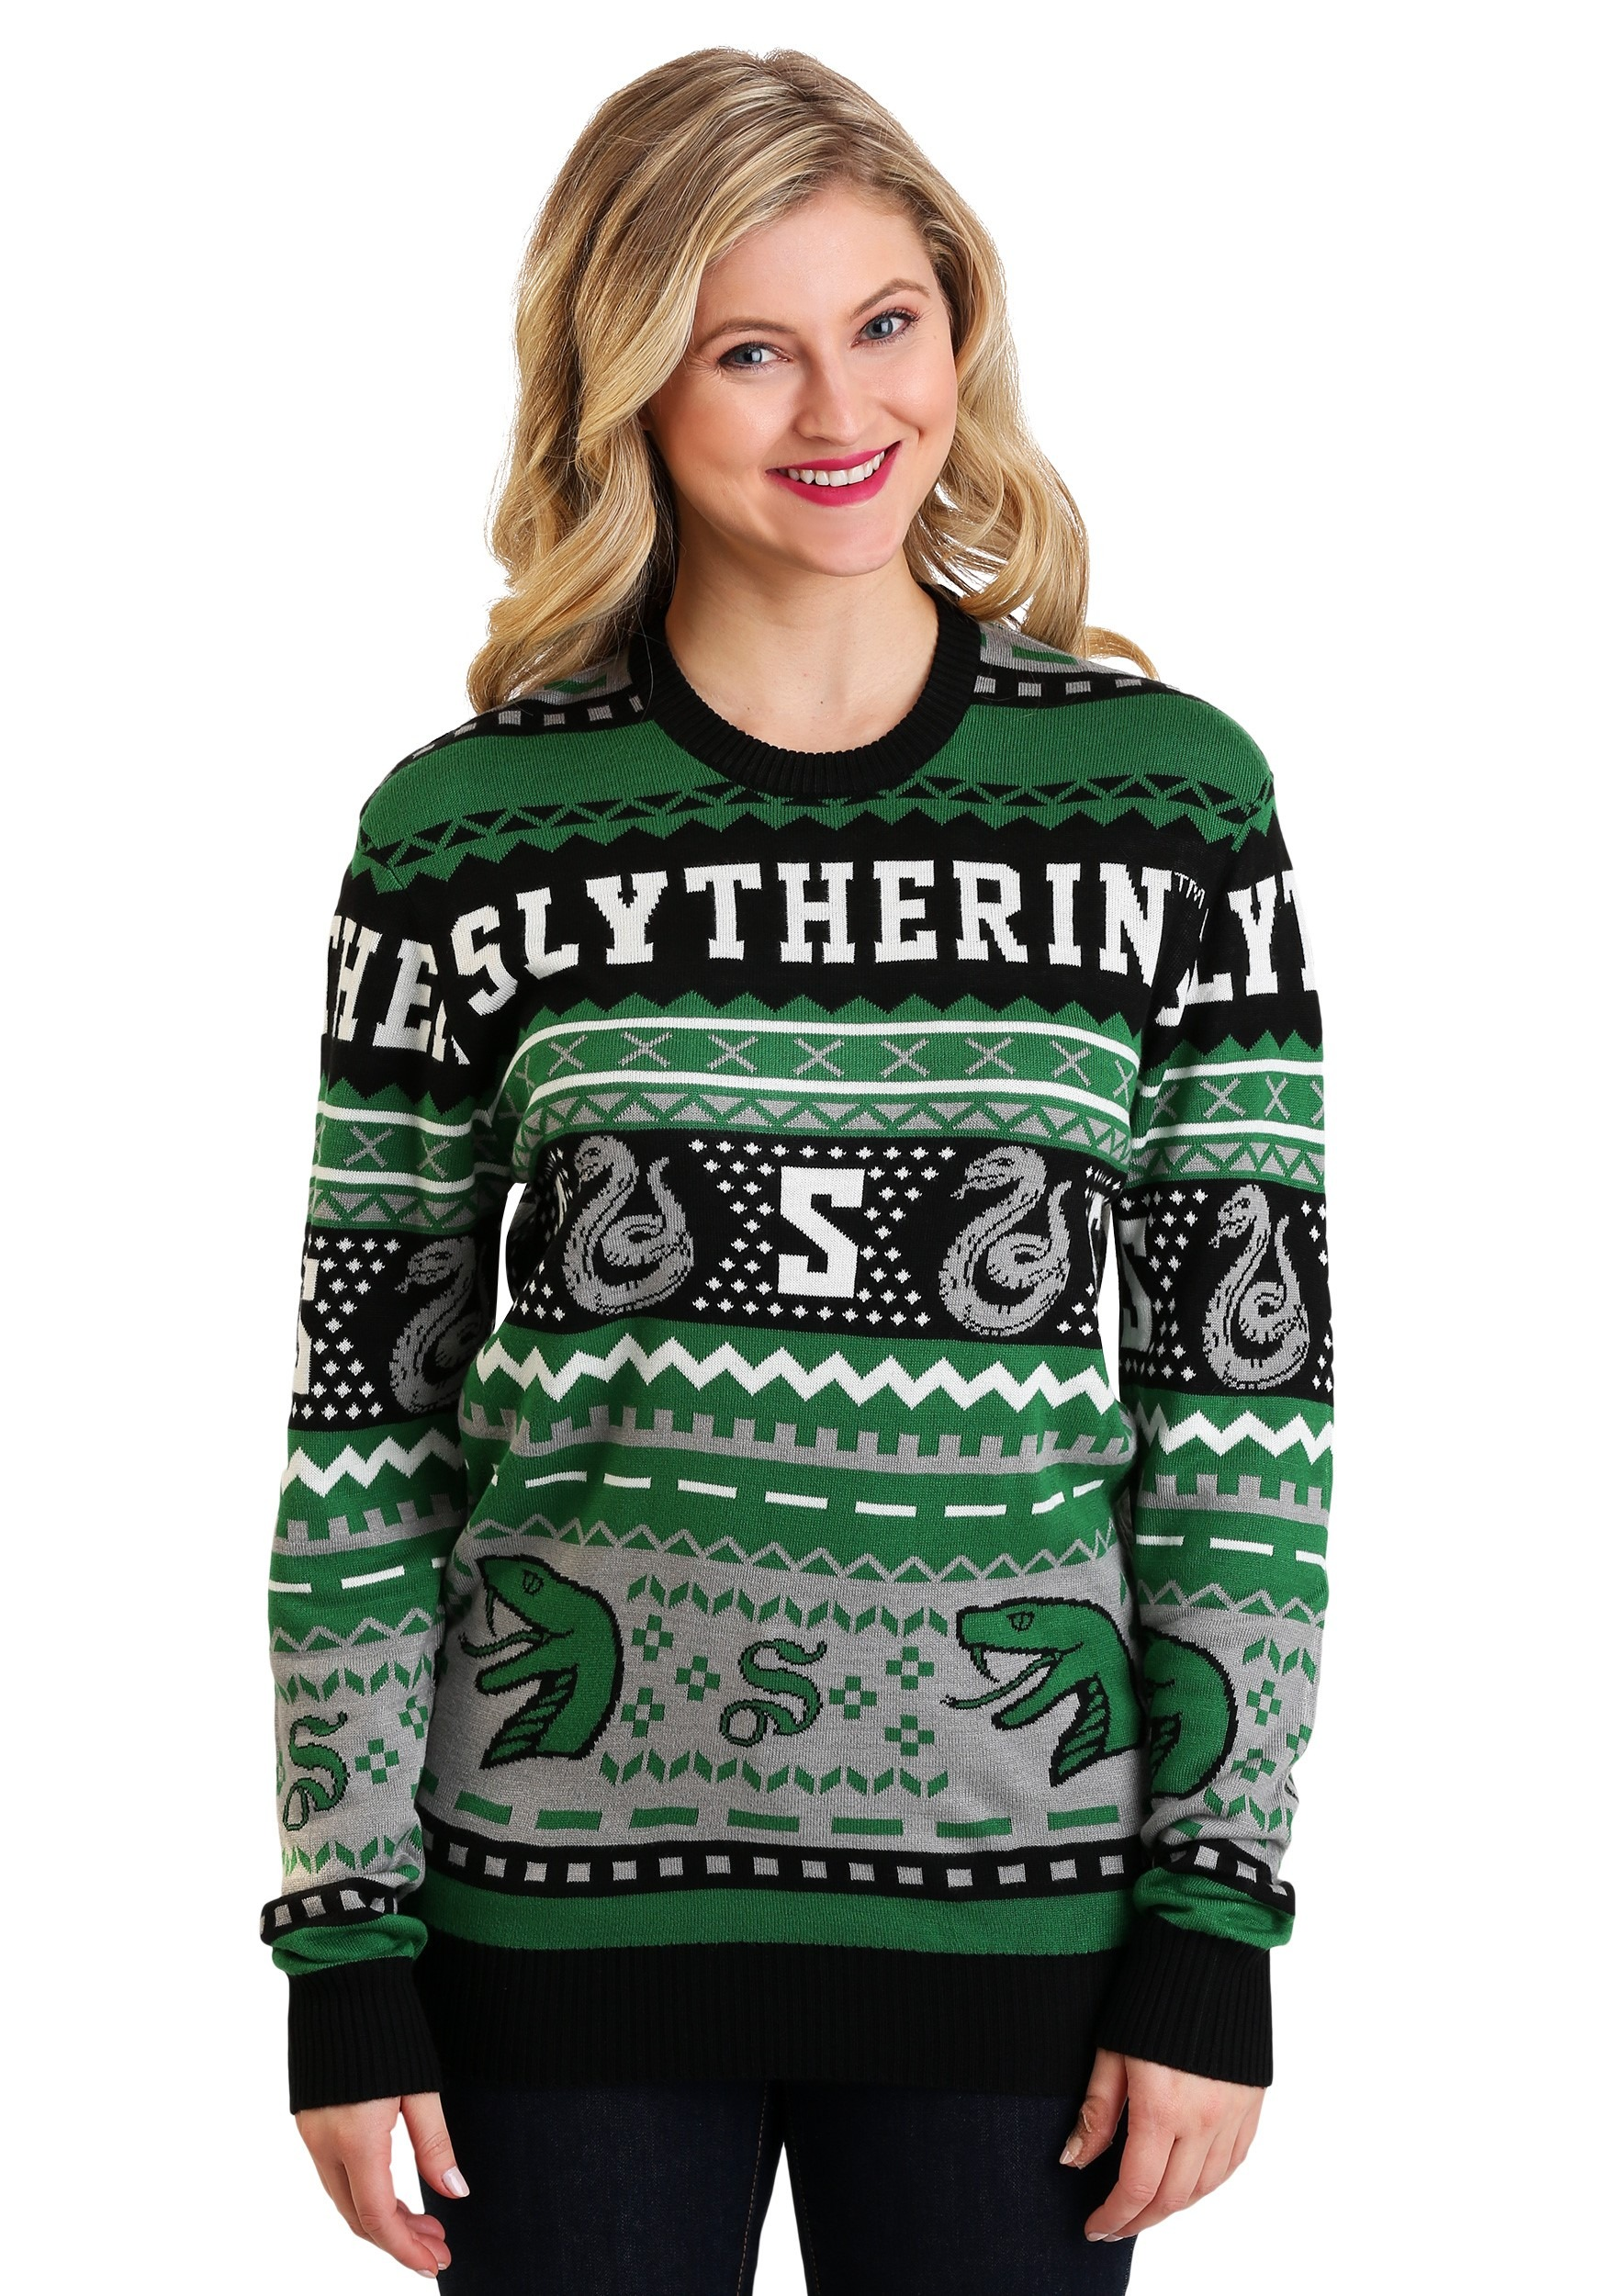 eb2d1f6ef83 Harry Potter Slytherin Ugly Sweater